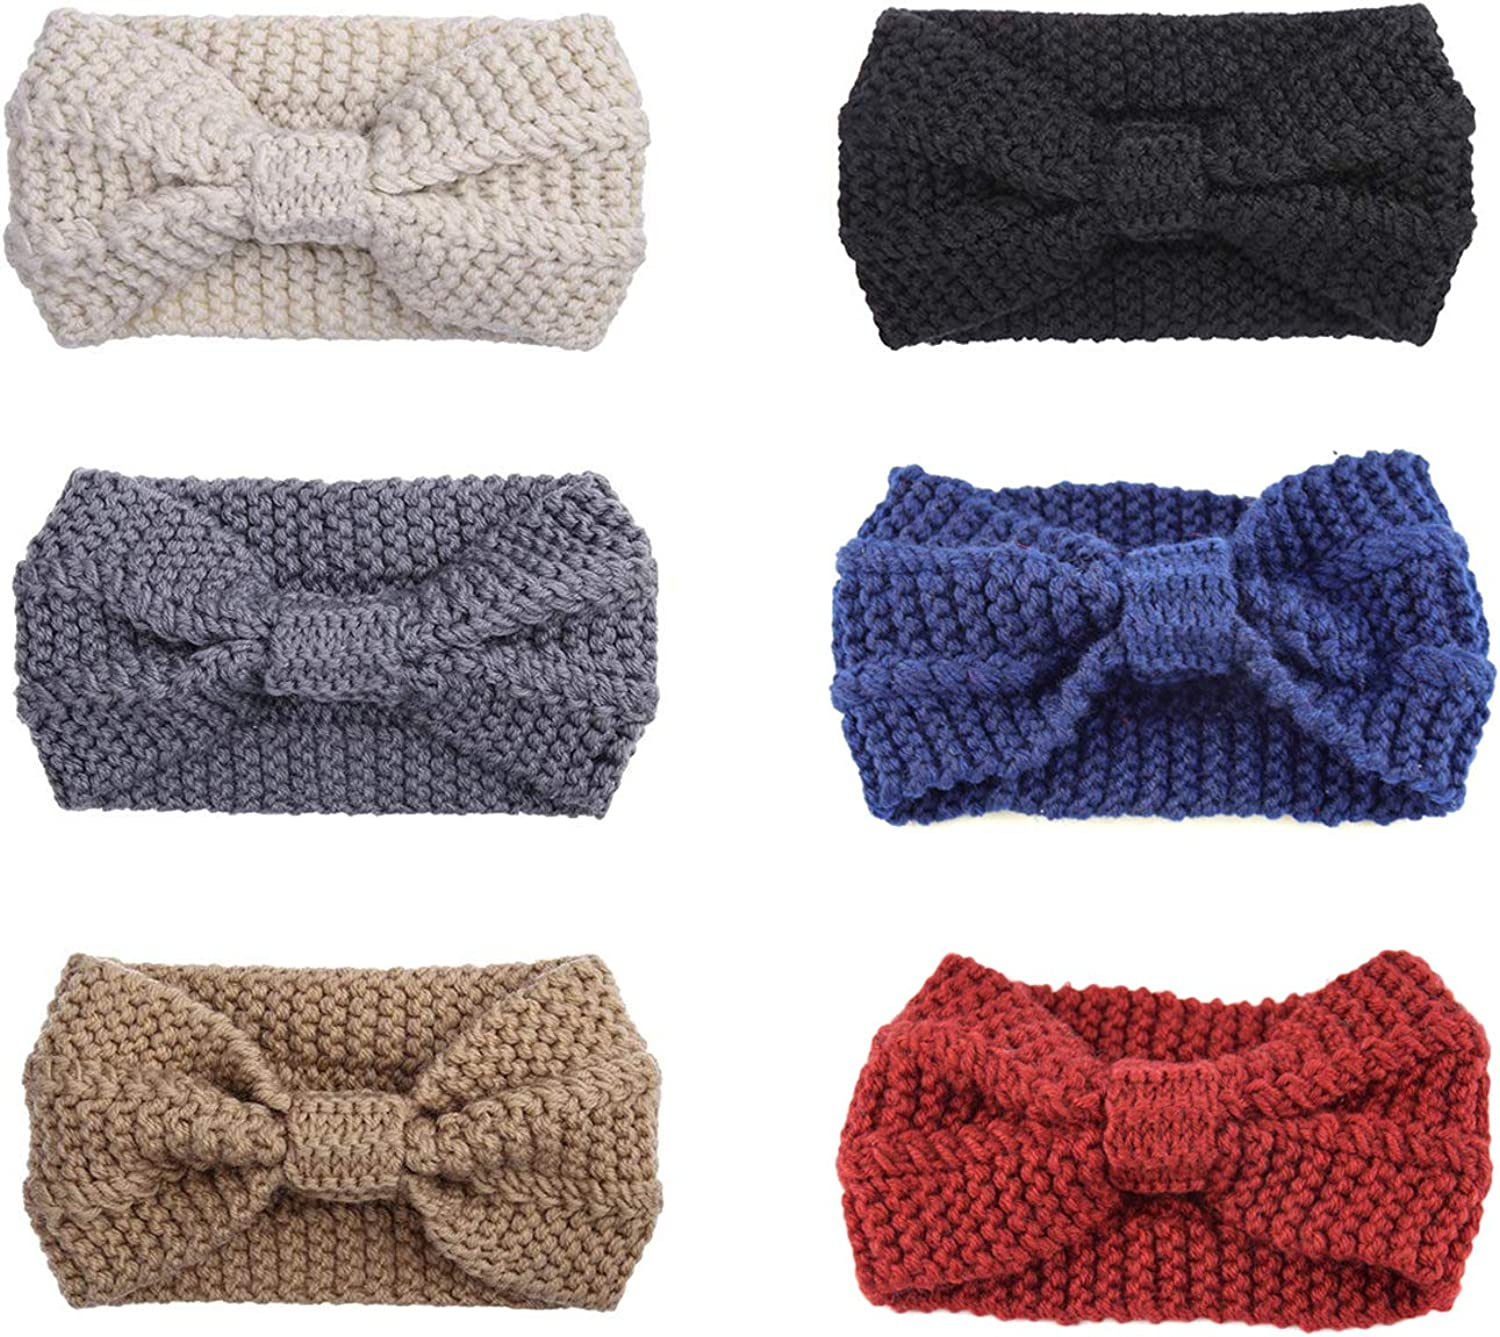 Vpang 6 Pcs Womens Winter Knitted Headbands Soft Crochet Hair Bands Turban Headband Ear Warmers Cable Bow Knotted Head Wraps for Women Girls